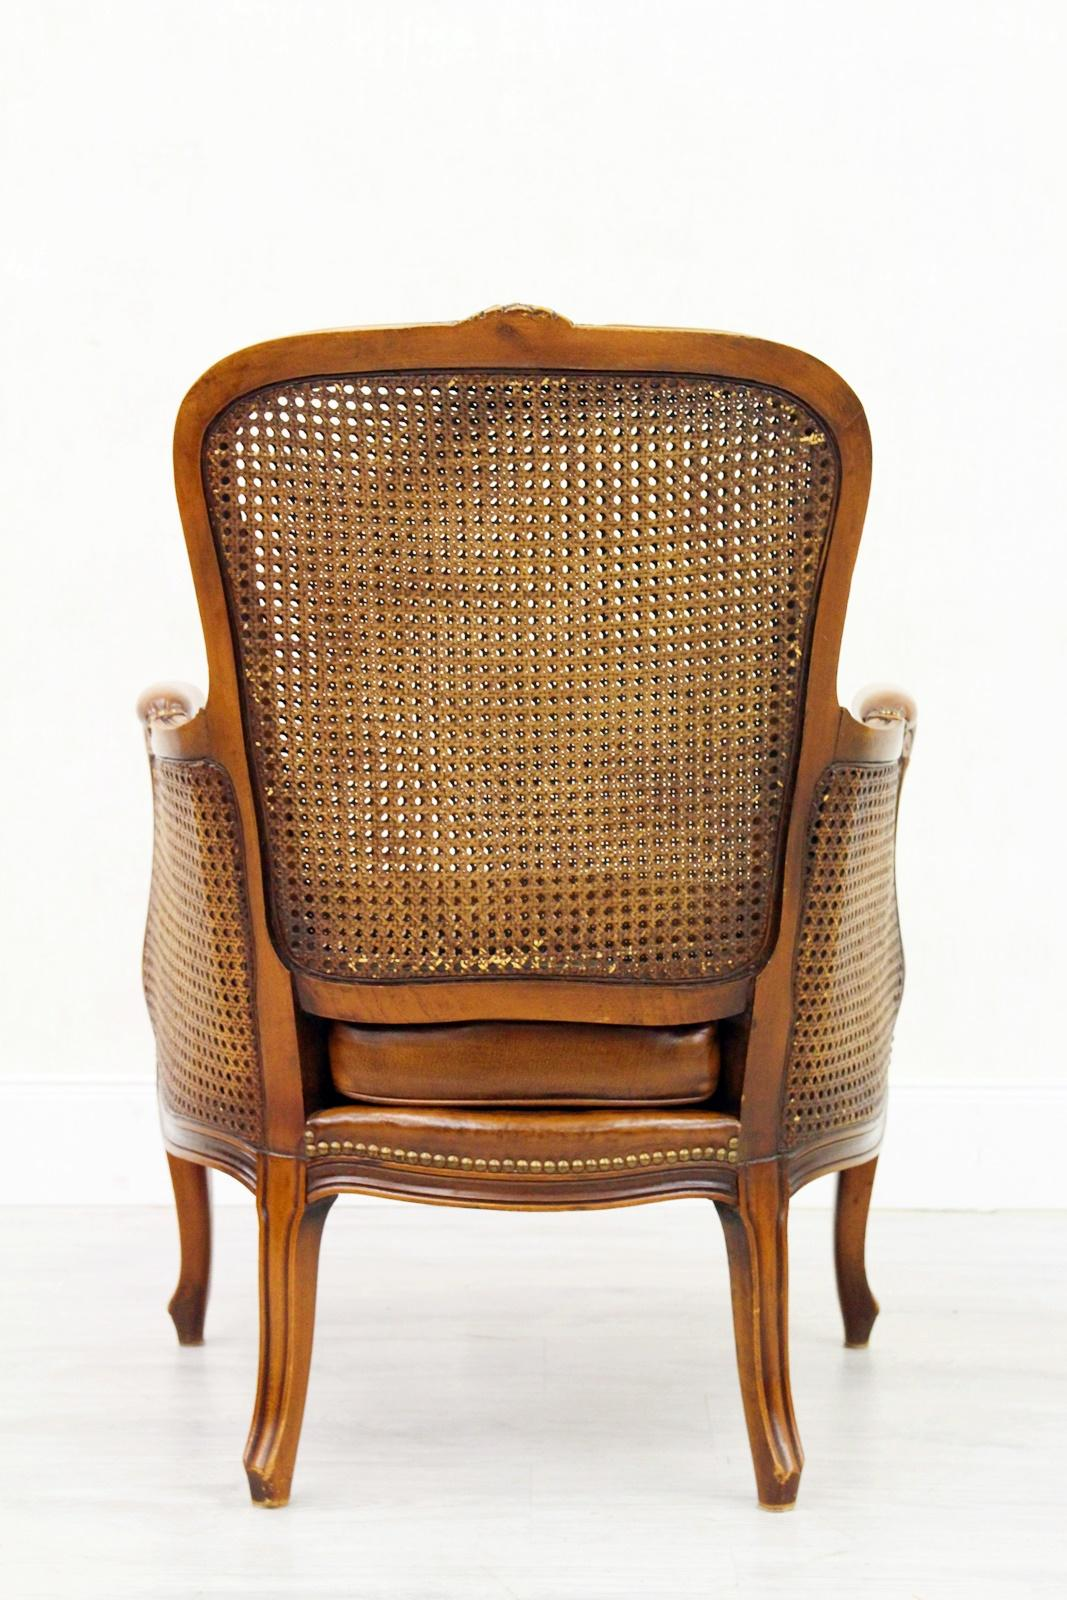 Sessel Chesterfield Chippendale Sessel Chesterfield Sessel Barock Antik Leder Rattan